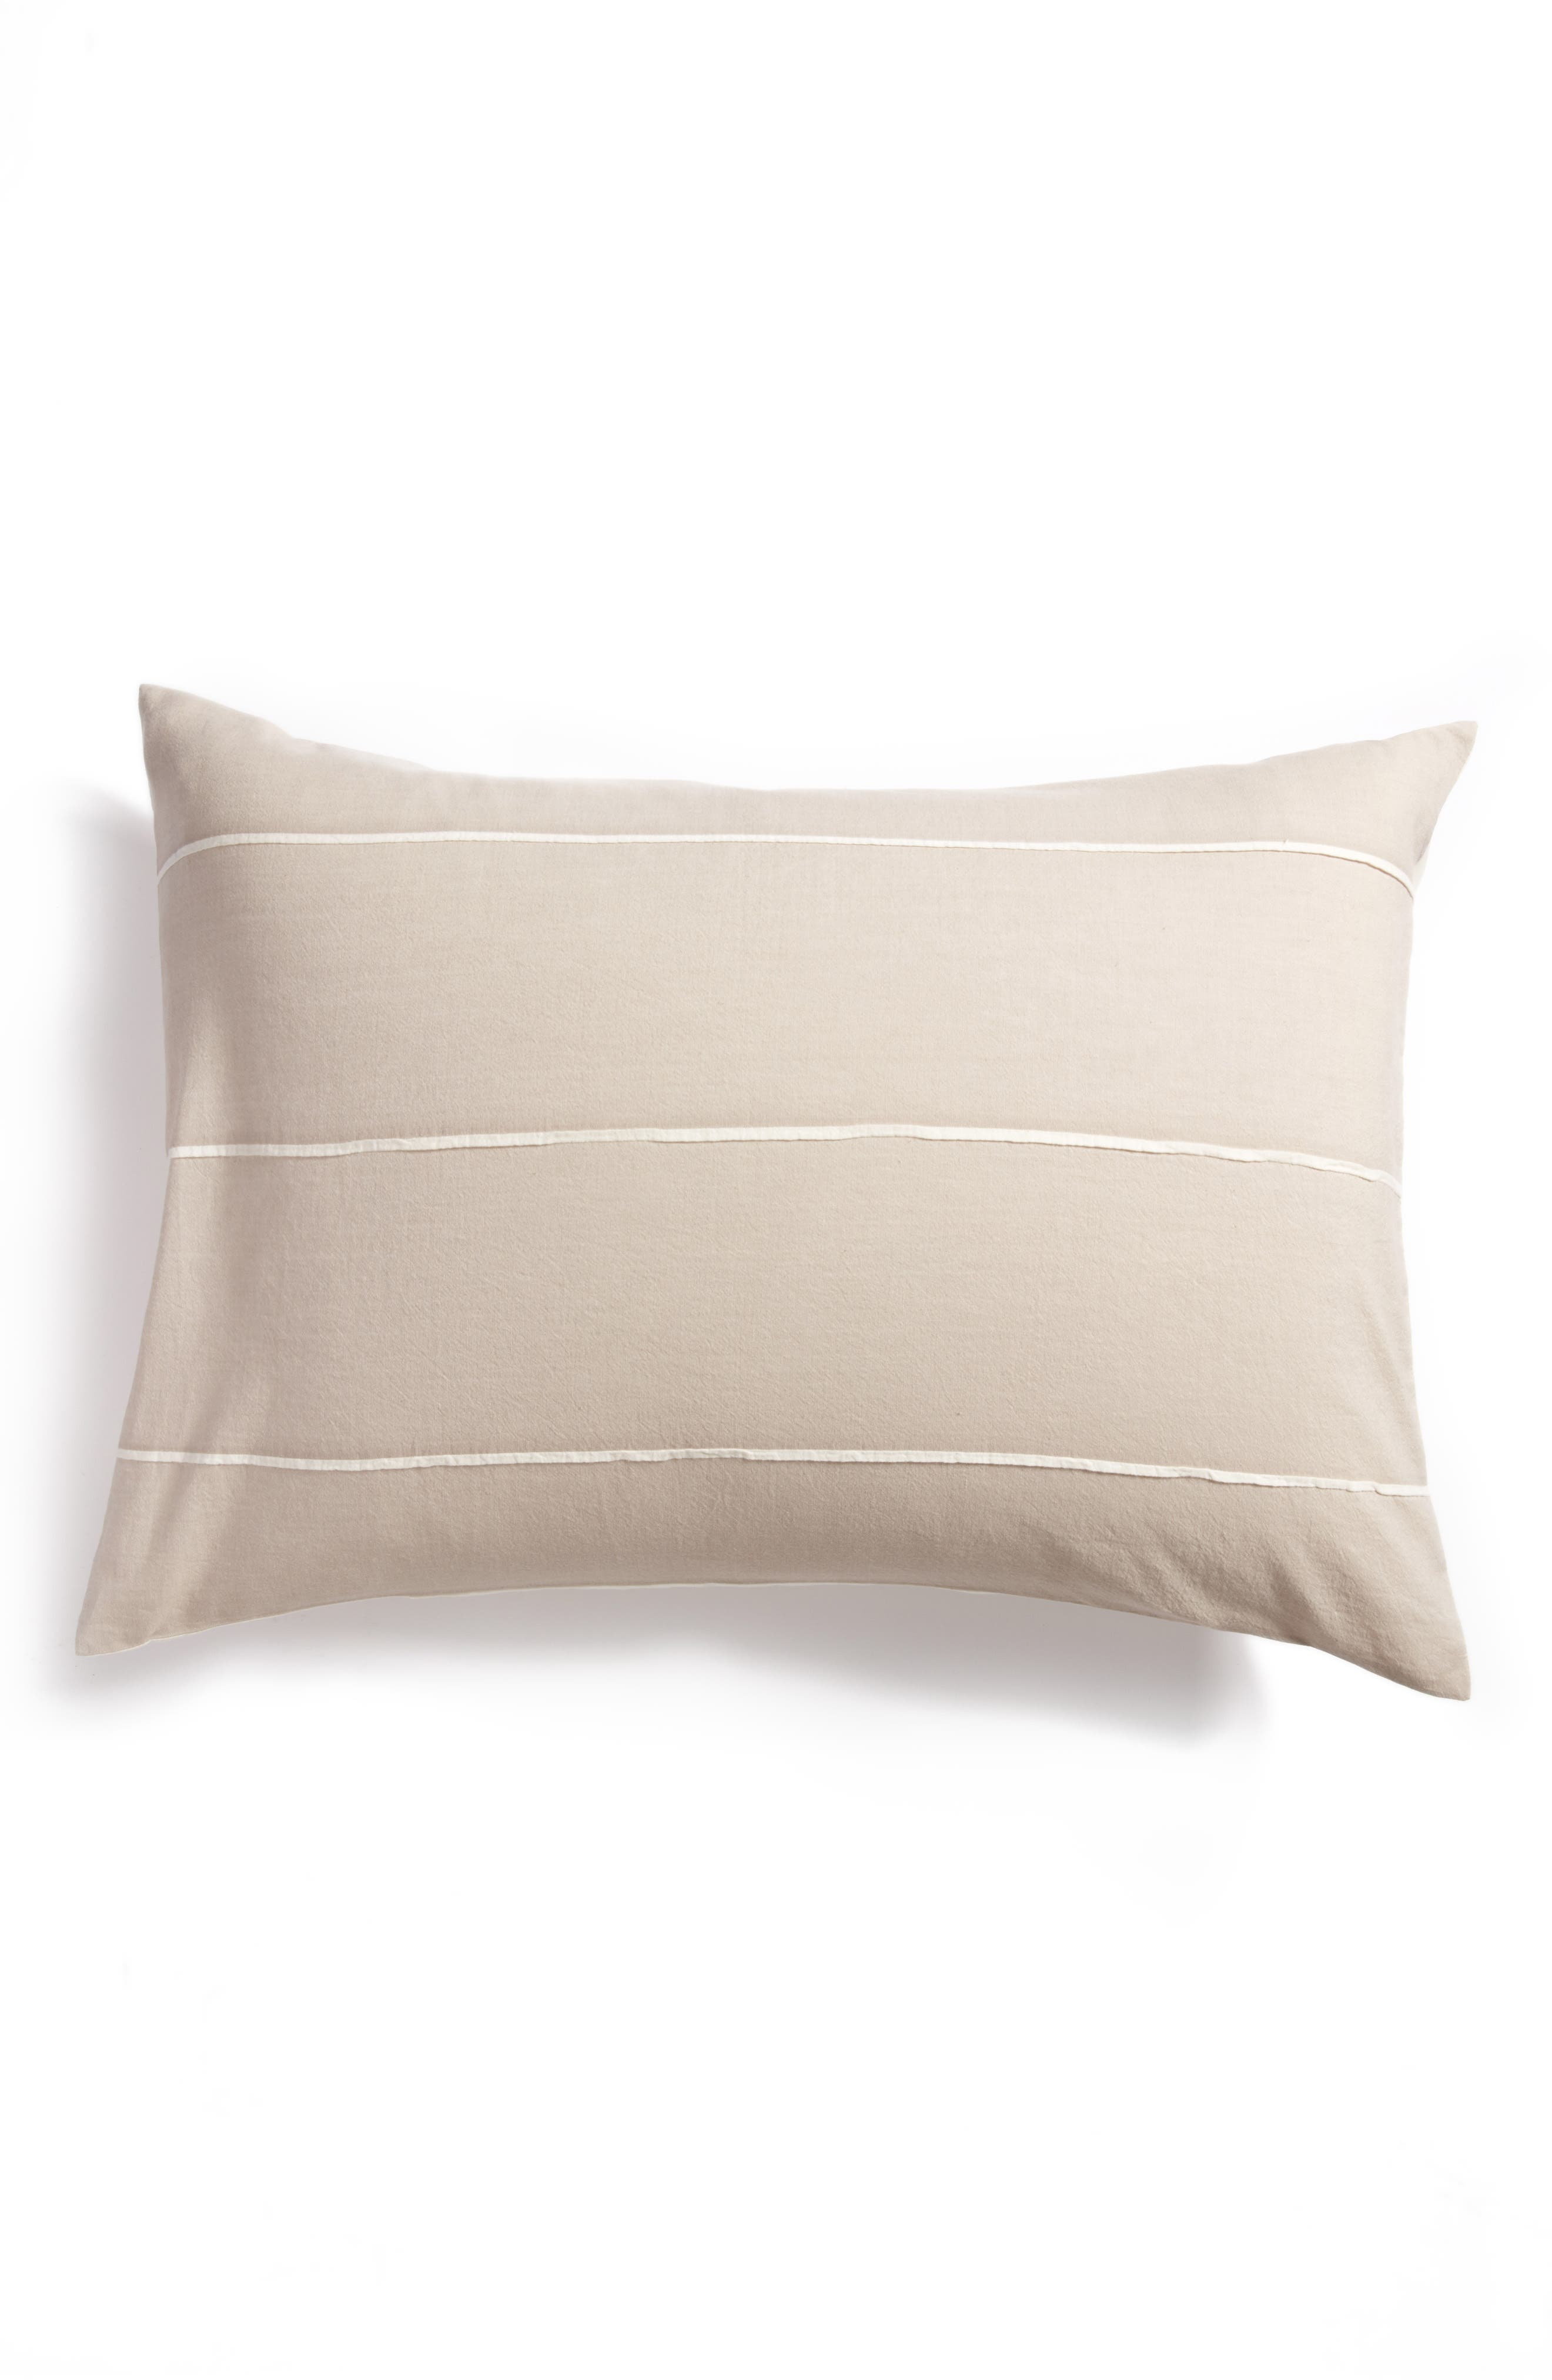 Textured Stripe Pillow Sham,                             Main thumbnail 1, color,                             020